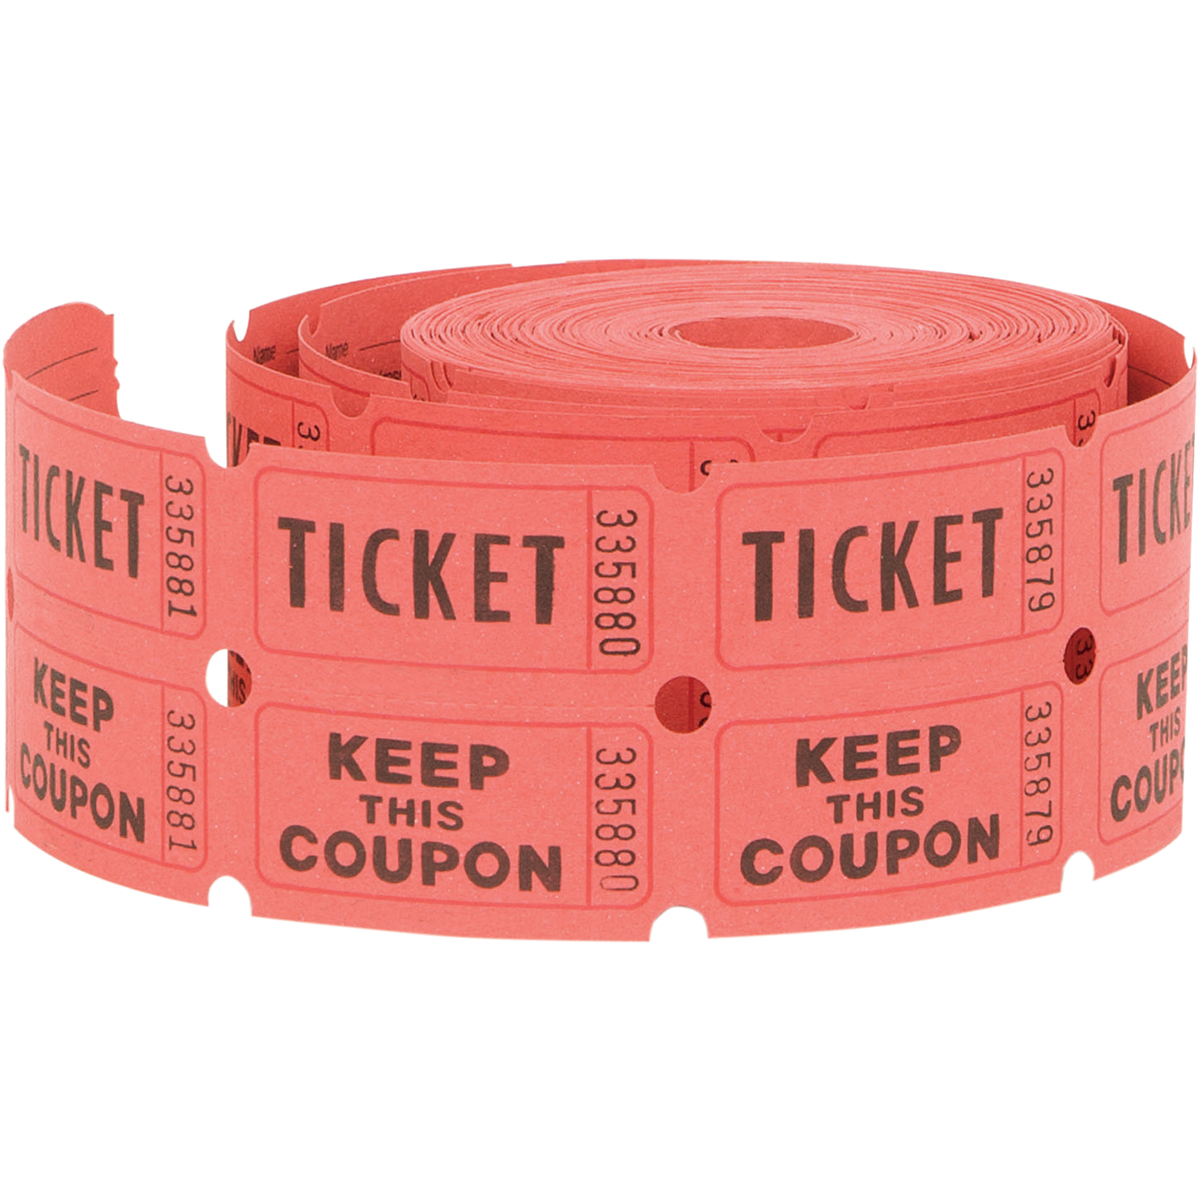 Admission & Raffle Tickets, Assorted, 500ct - Walmart.com